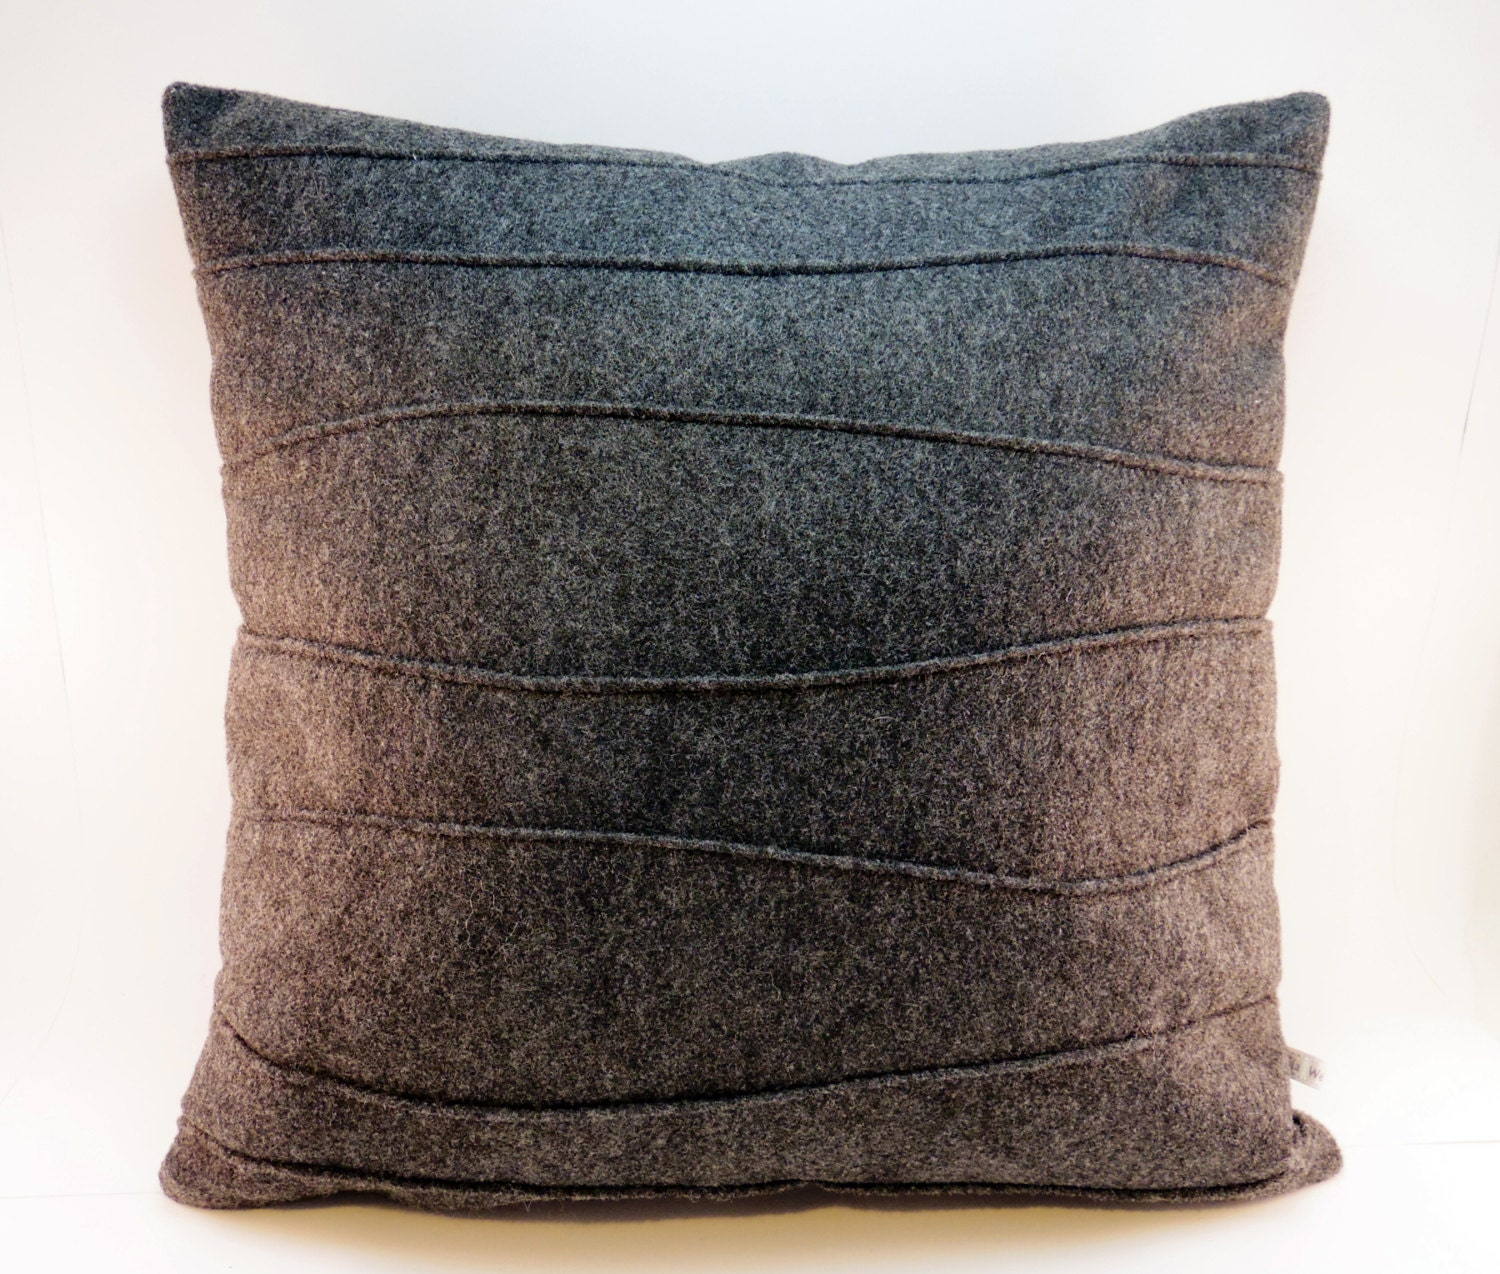 Charcoal Gray Pillow Felt Pillow Decorative Pillow with